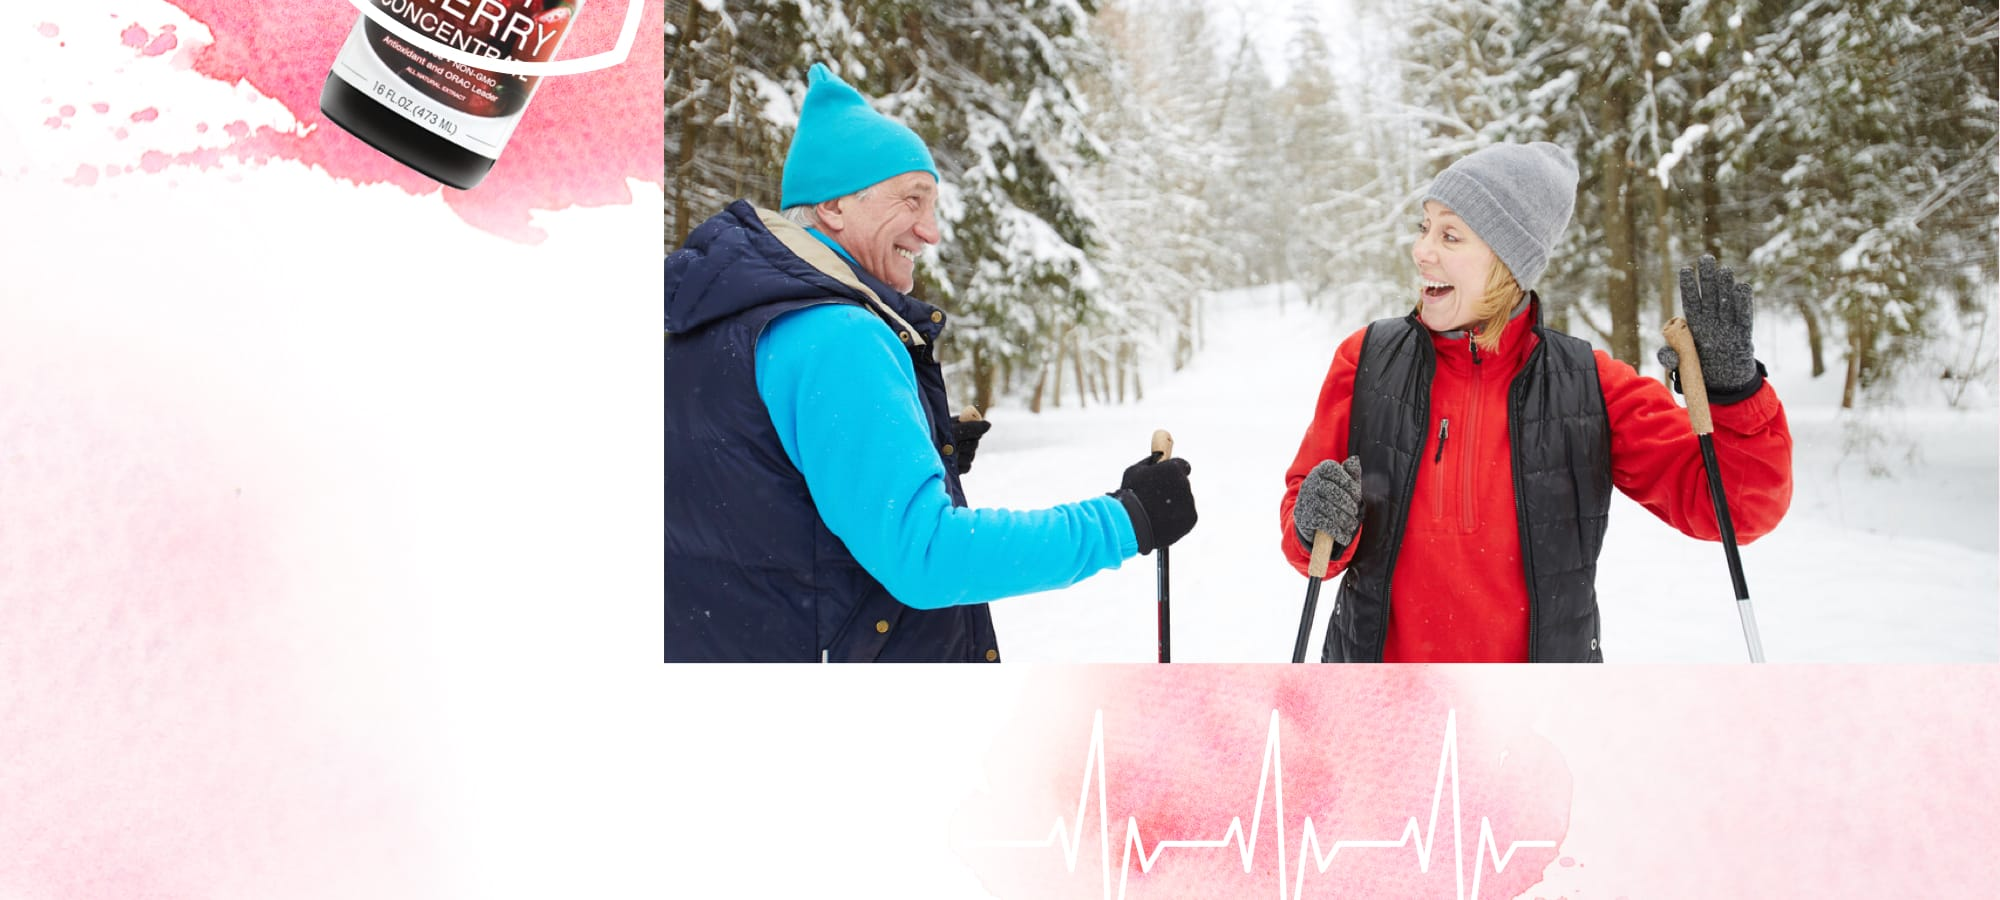 Elderly man and women ski together and enjoy active outdoor activities